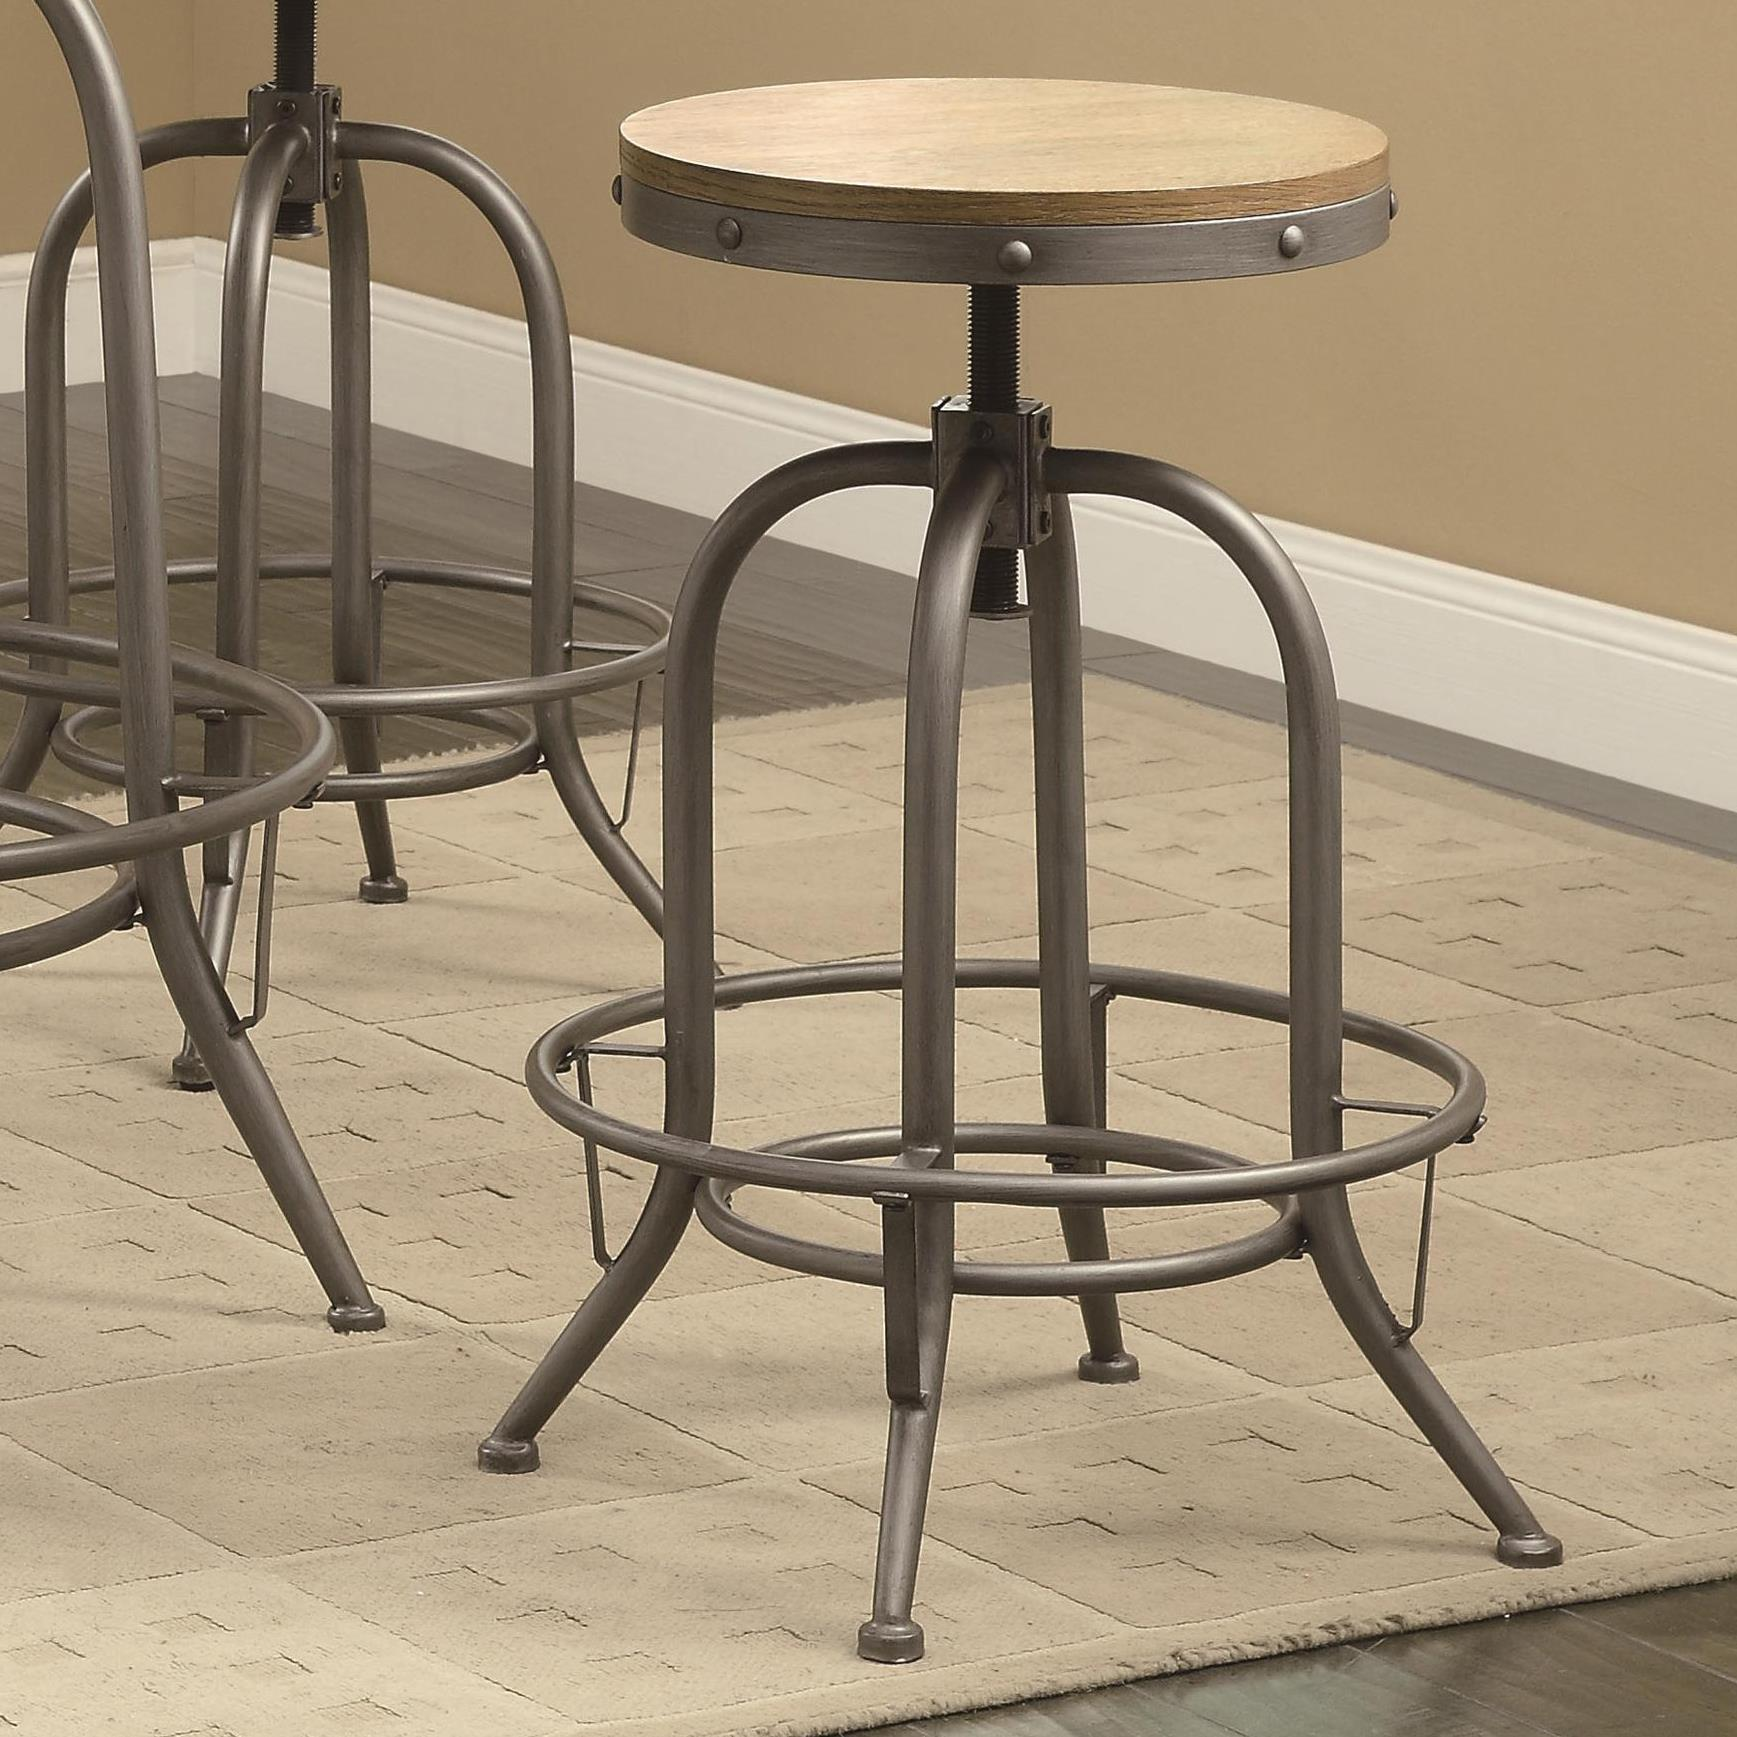 Coaster Bar Units and Bar Tables Adjustable Bar Stool - Item Number: 122098